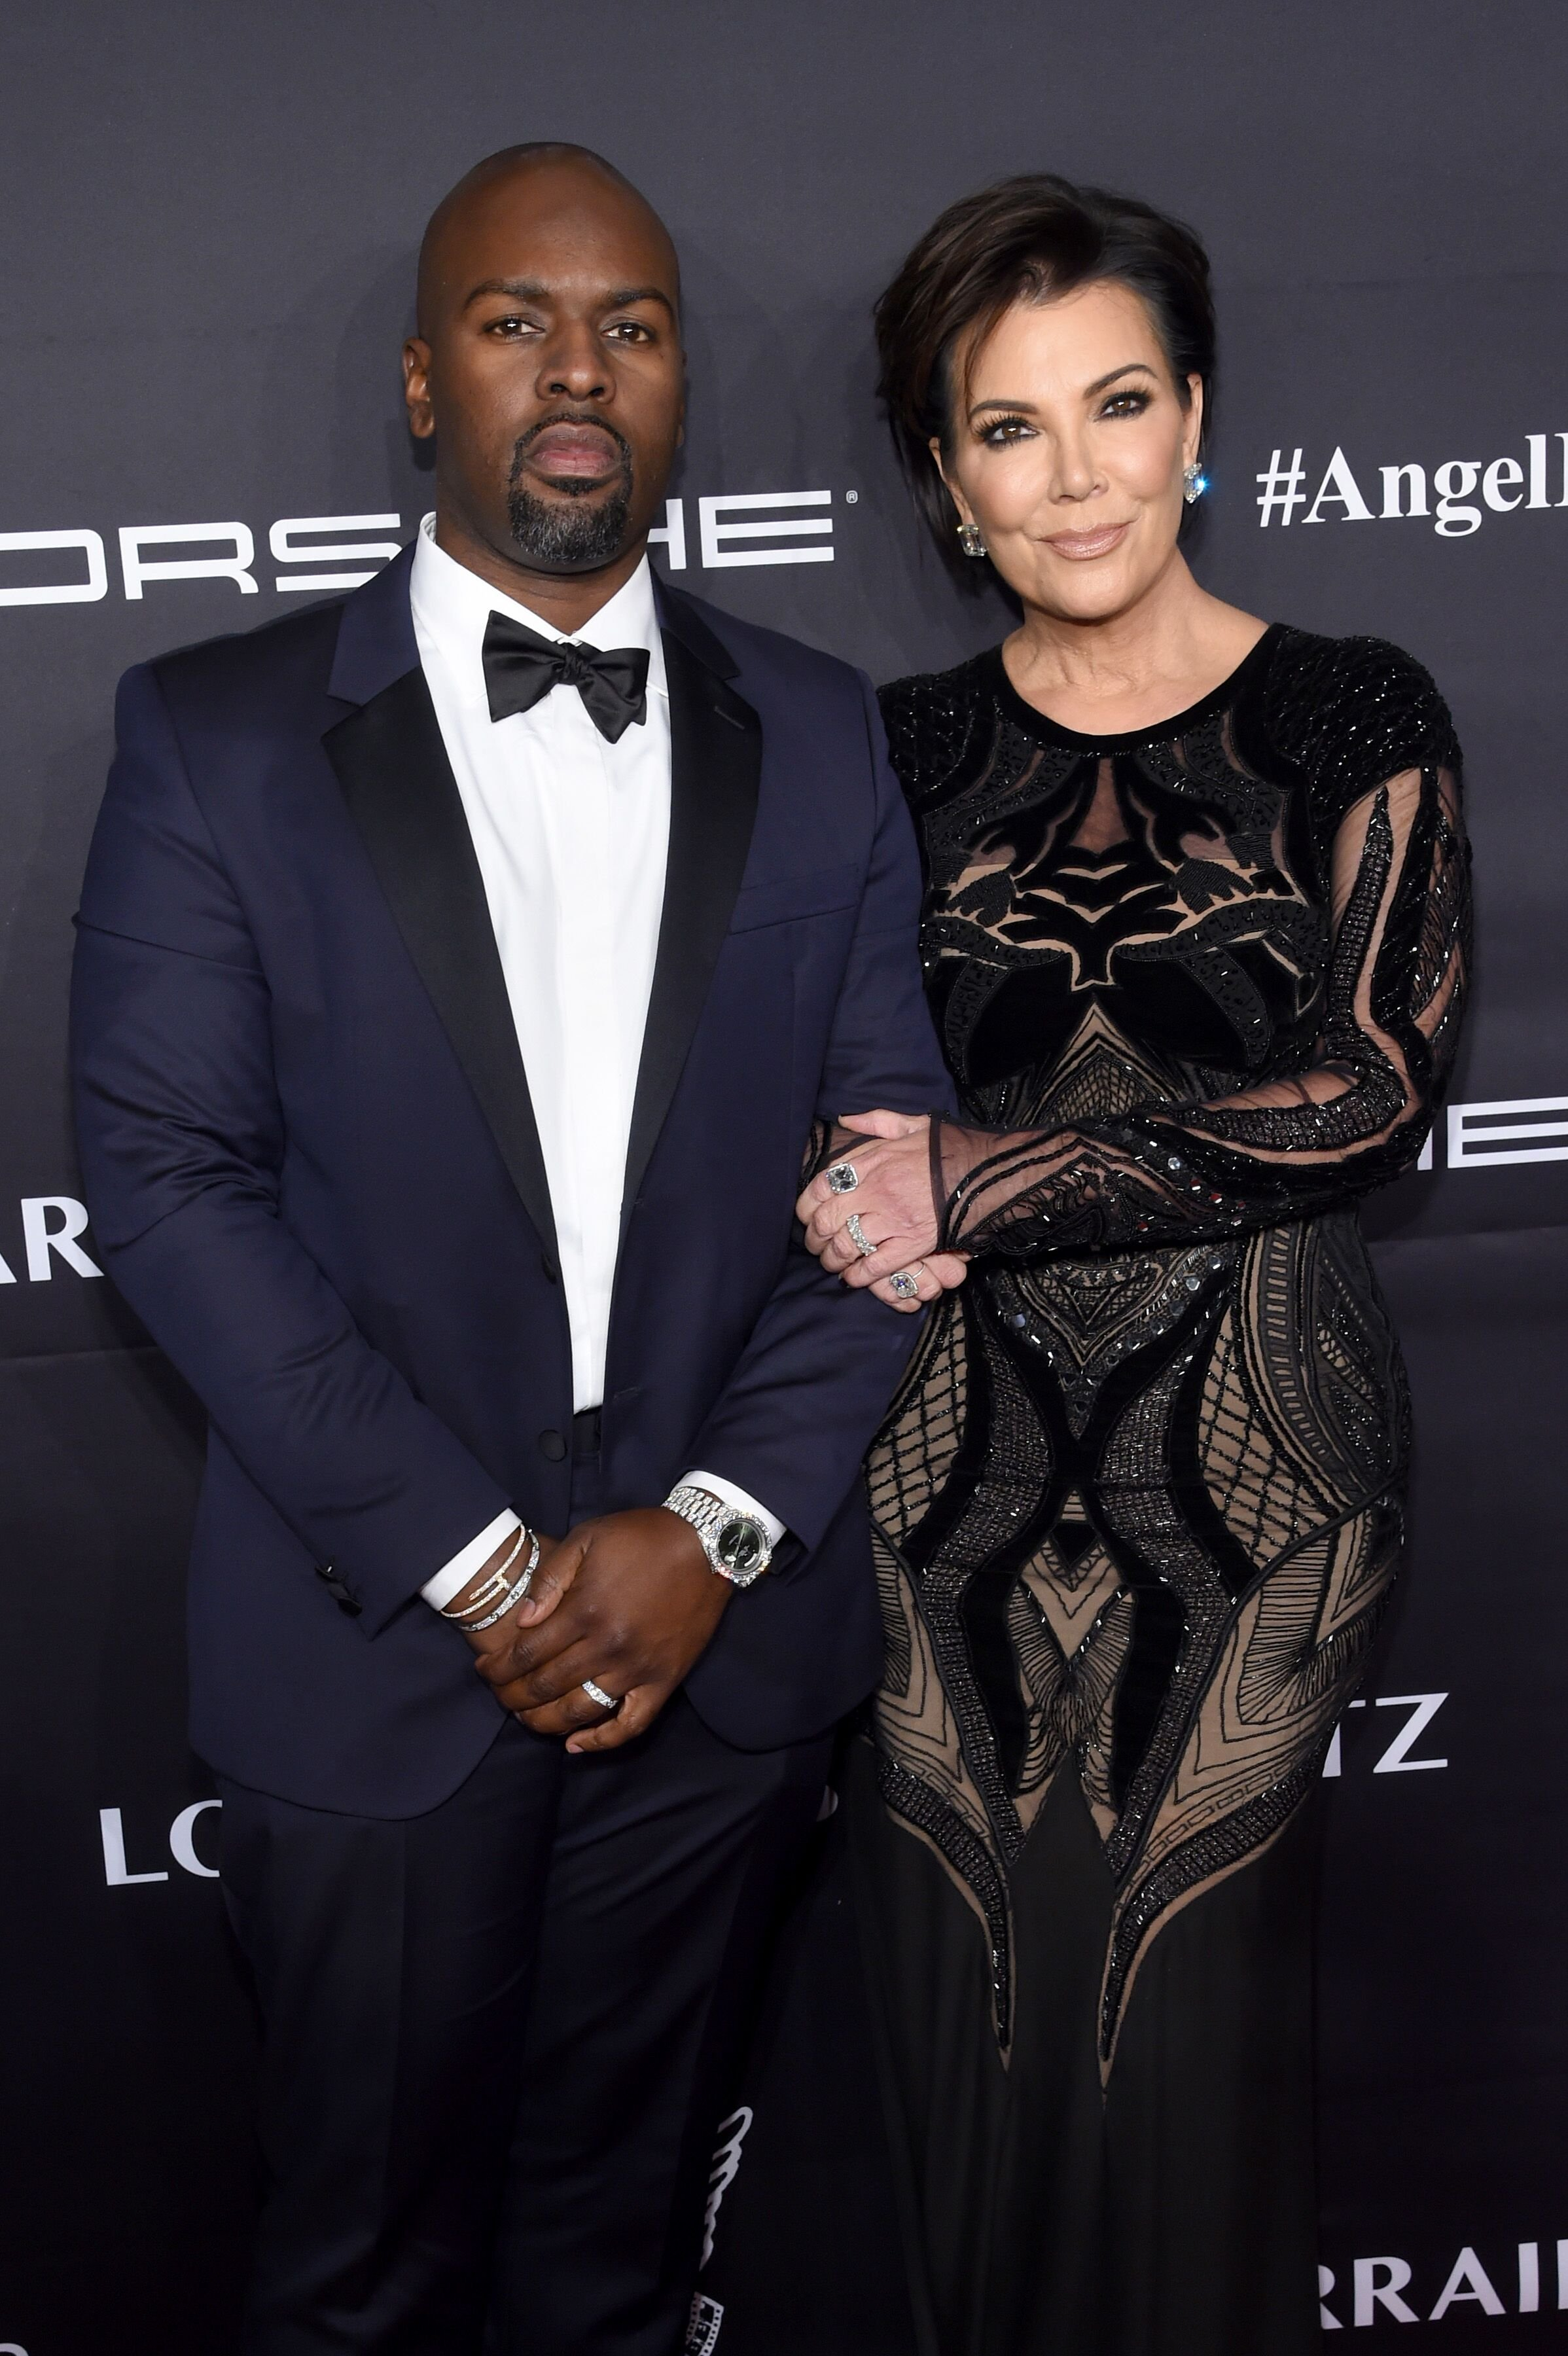 Kris Jenner and Corey Gamble attend the 2016 Angel Ball hosted by Gabrielle's Angel Foundation For Cancer Research on November 21, 2016 in New York City.   Source: Getty Images